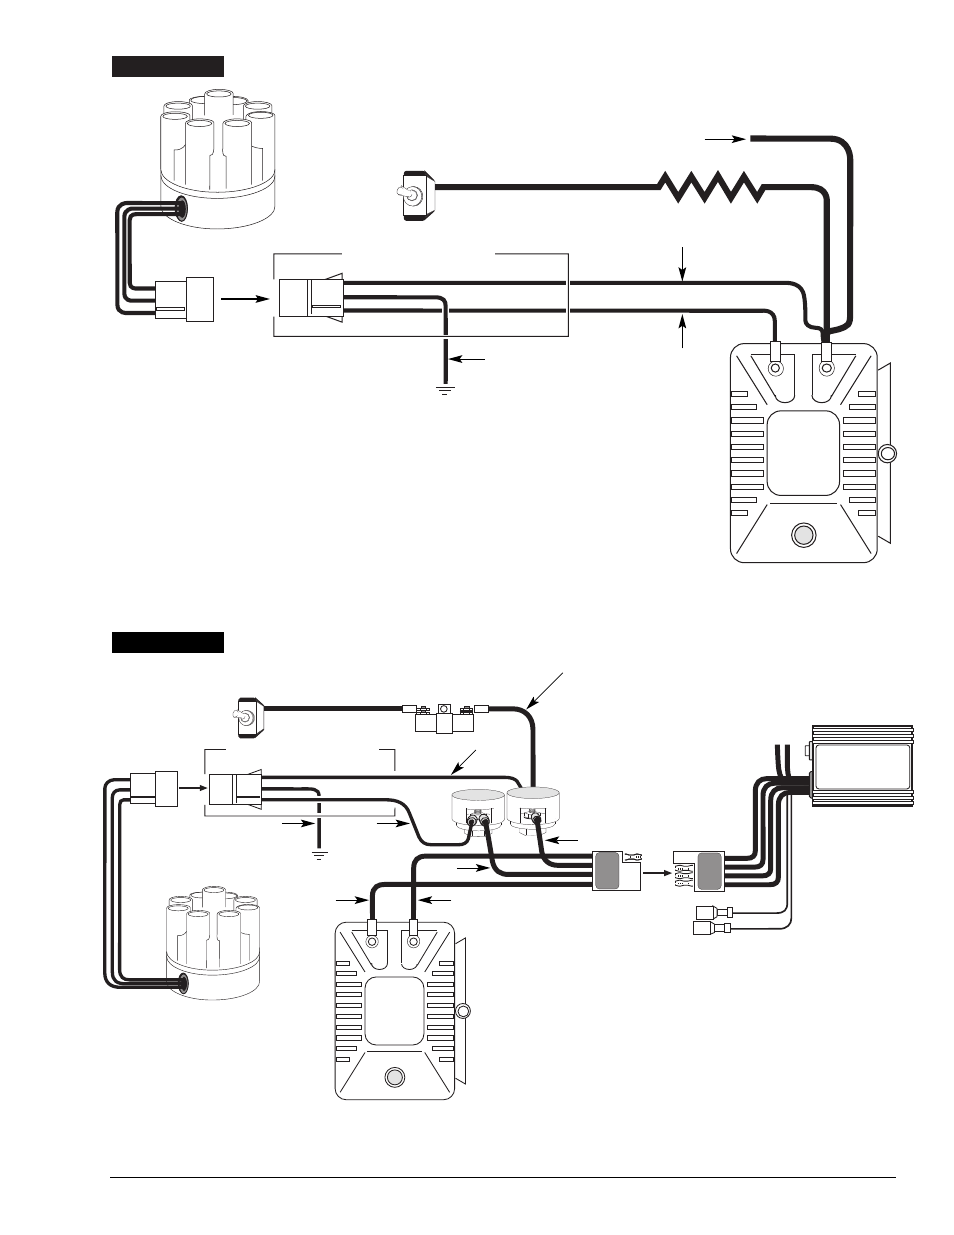 Coil Mallory Ignition Unilite Distributor User Manual On Plug Wiring Diagram Page 3 13